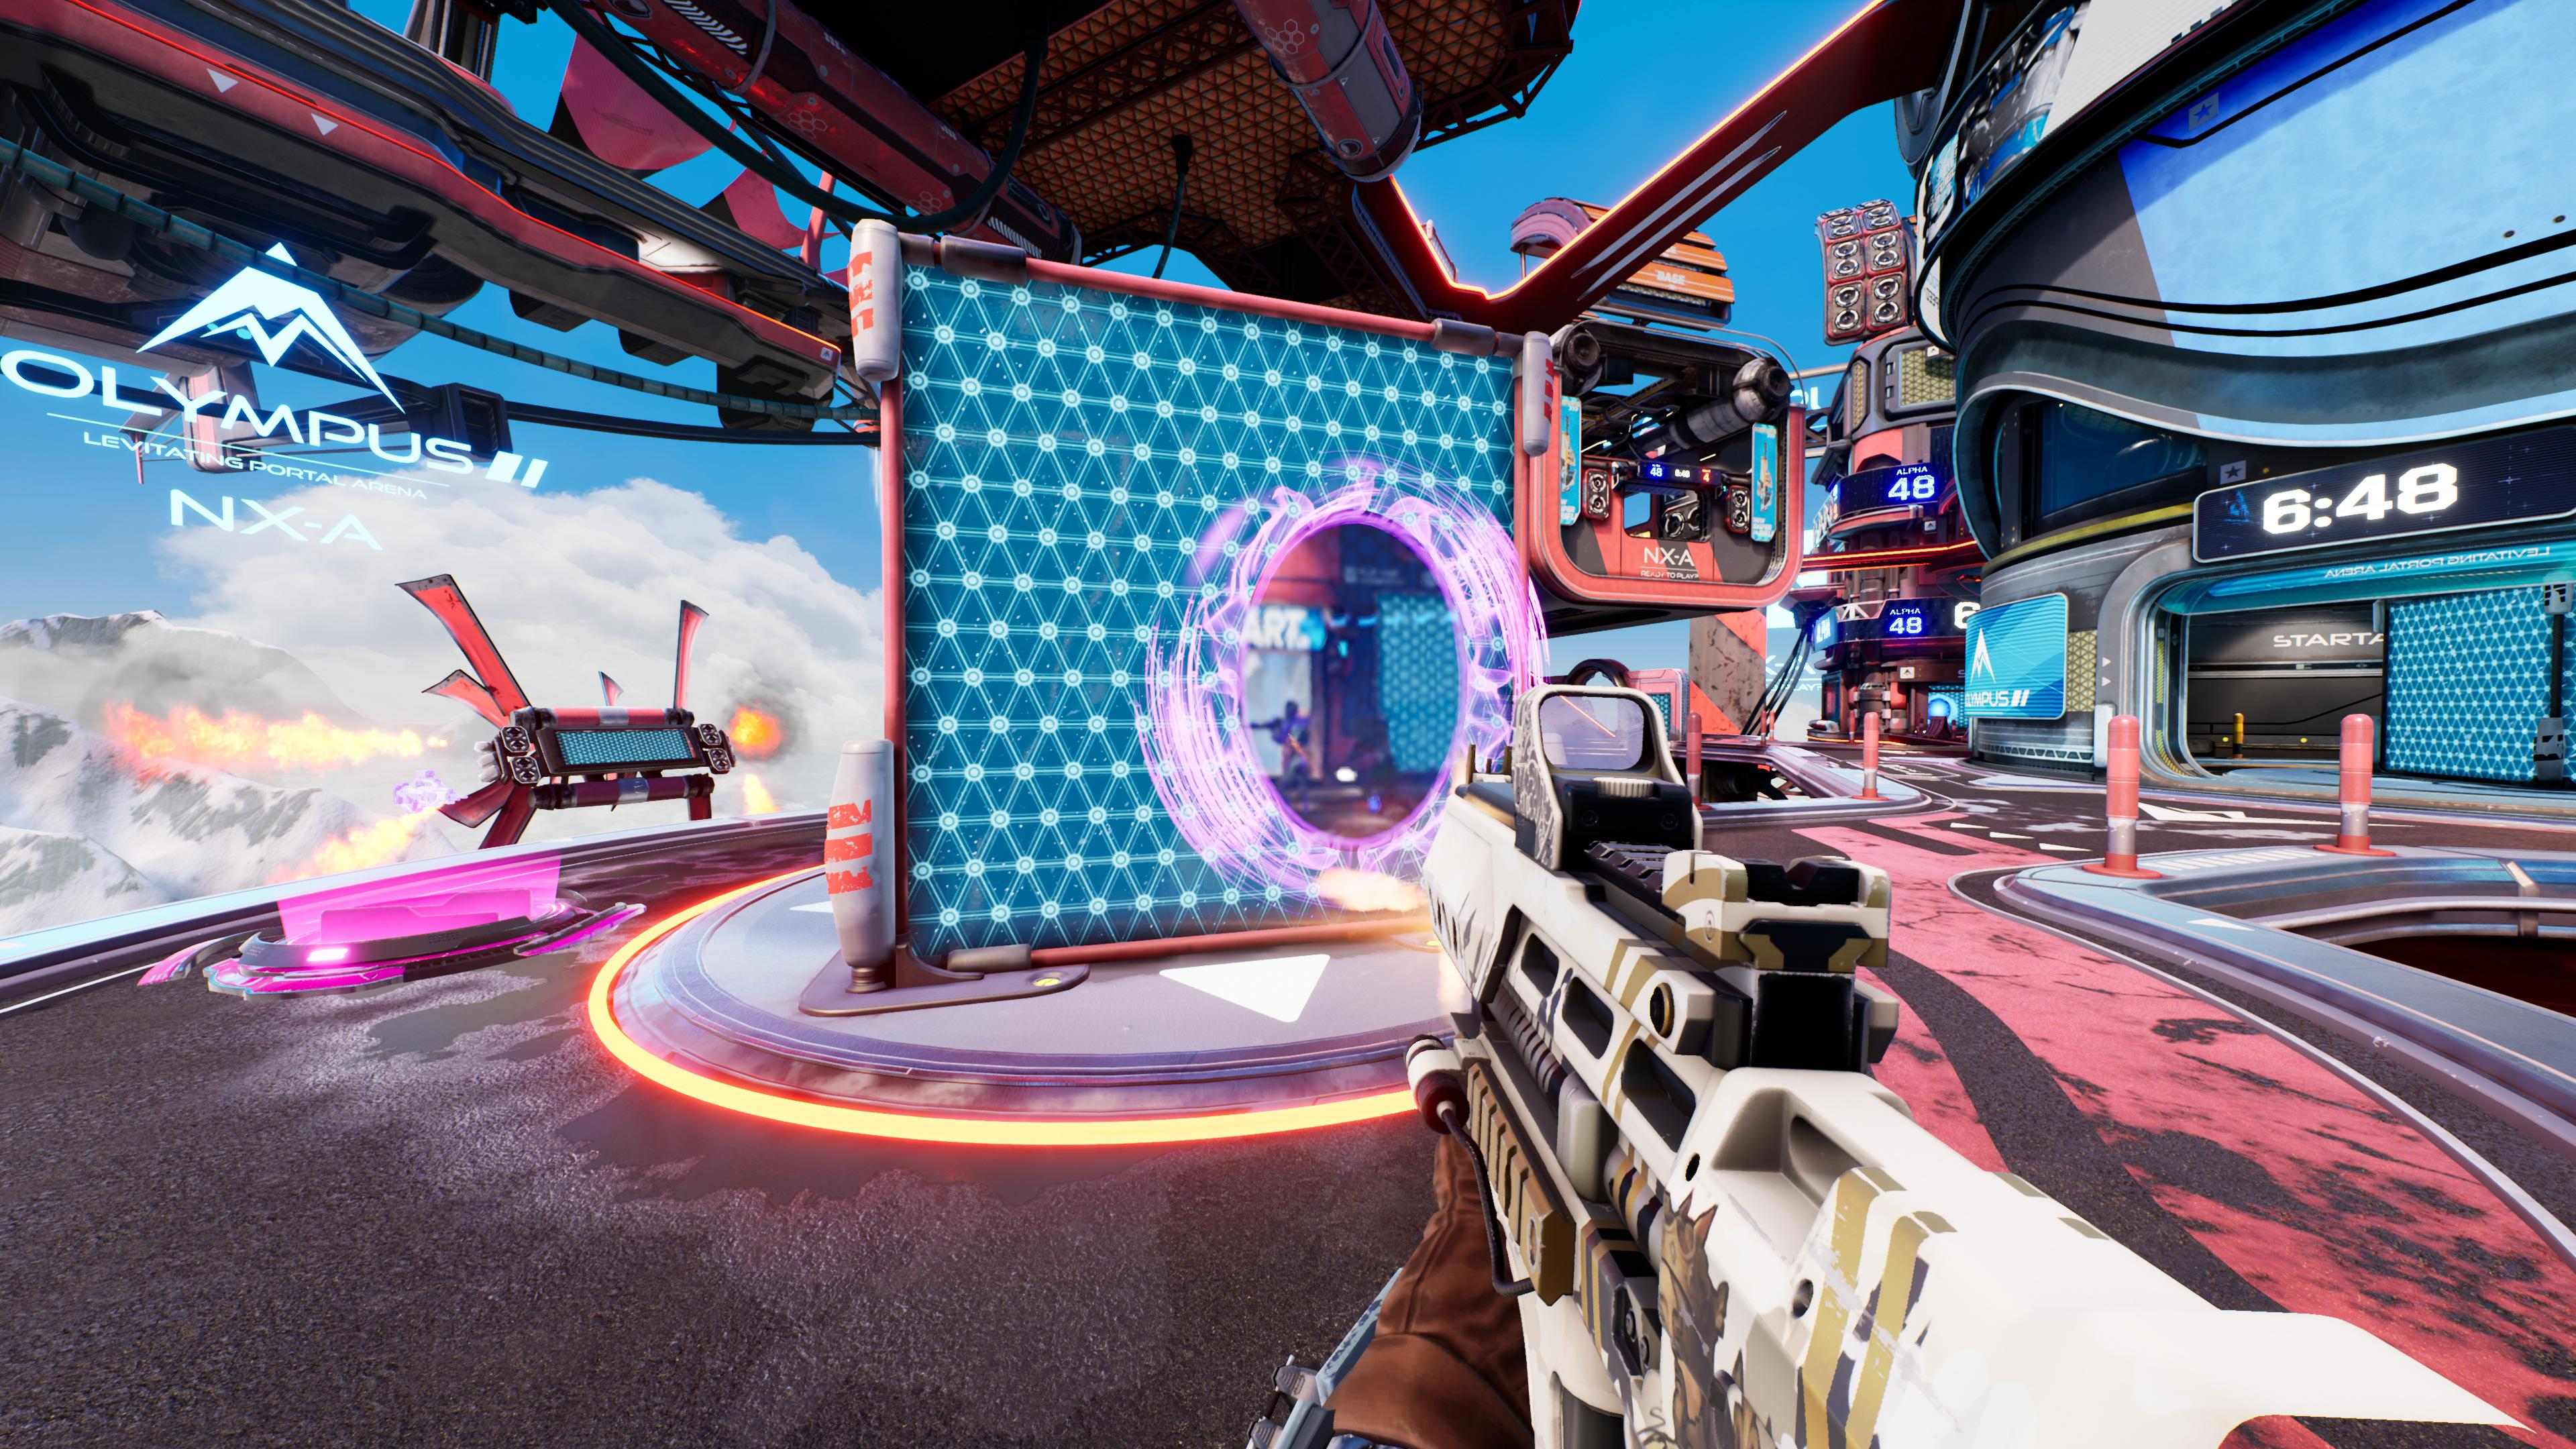 Splitgate combines Halo and Portal to create an insanely fast online arena shooter that rewards mechanical skill and quick thinking